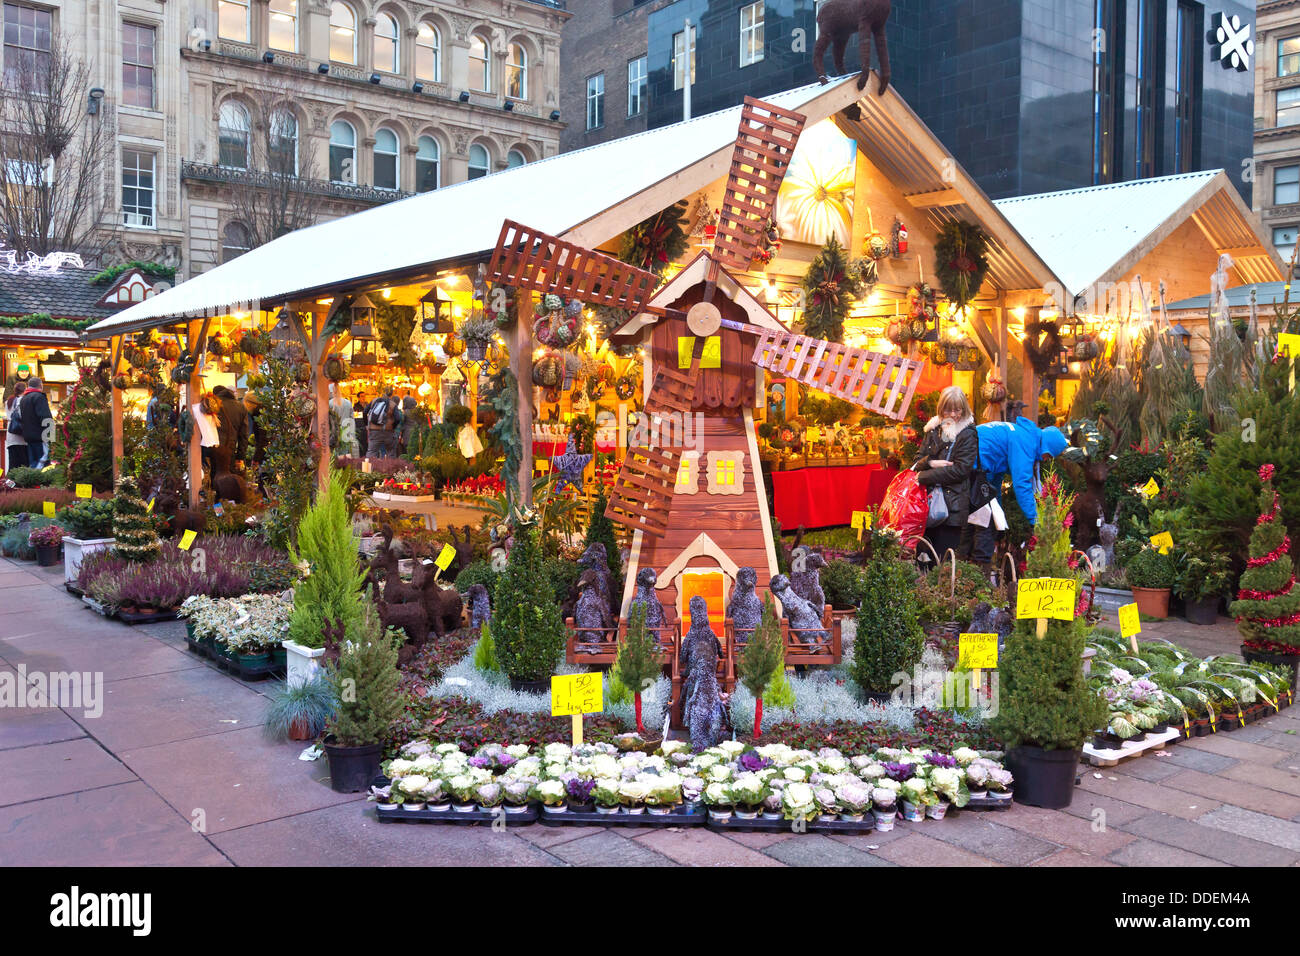 Customers browsing a stall selling potted conifers, wreaths and decorations at the Christmas Market, St Enoch Square, - Stock Image